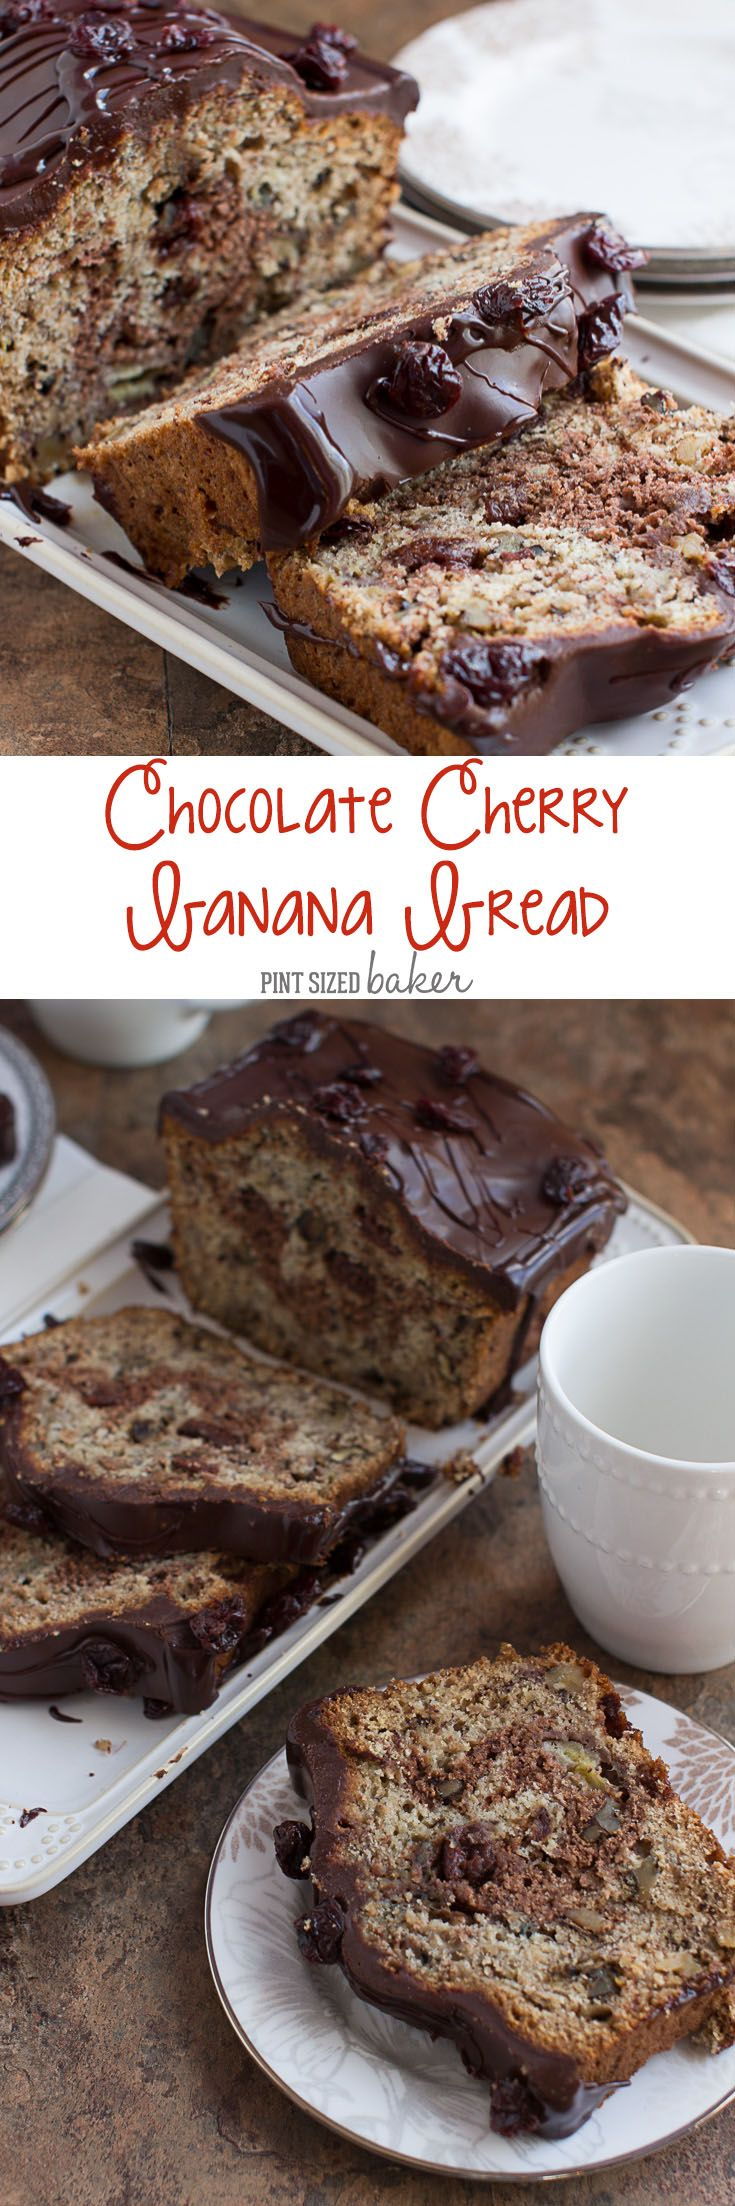 Chocolate Cherry Banana Bread is spiked with dried cherries and toasted walnuts then covered in chocolate!